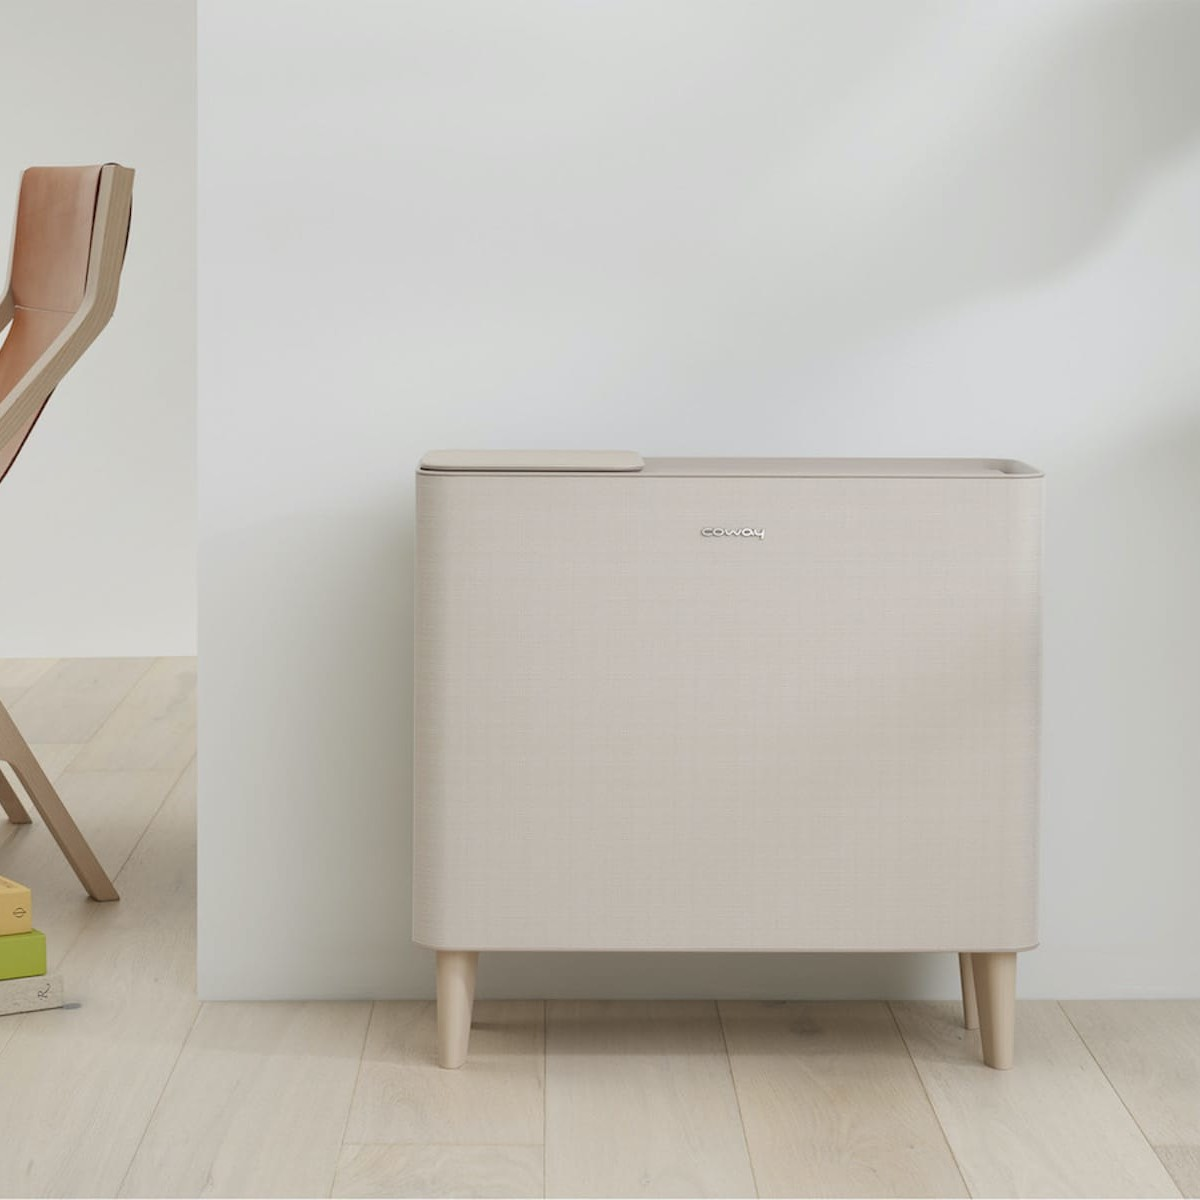 3 Beautiful air purifiers your home needs now thumbnail